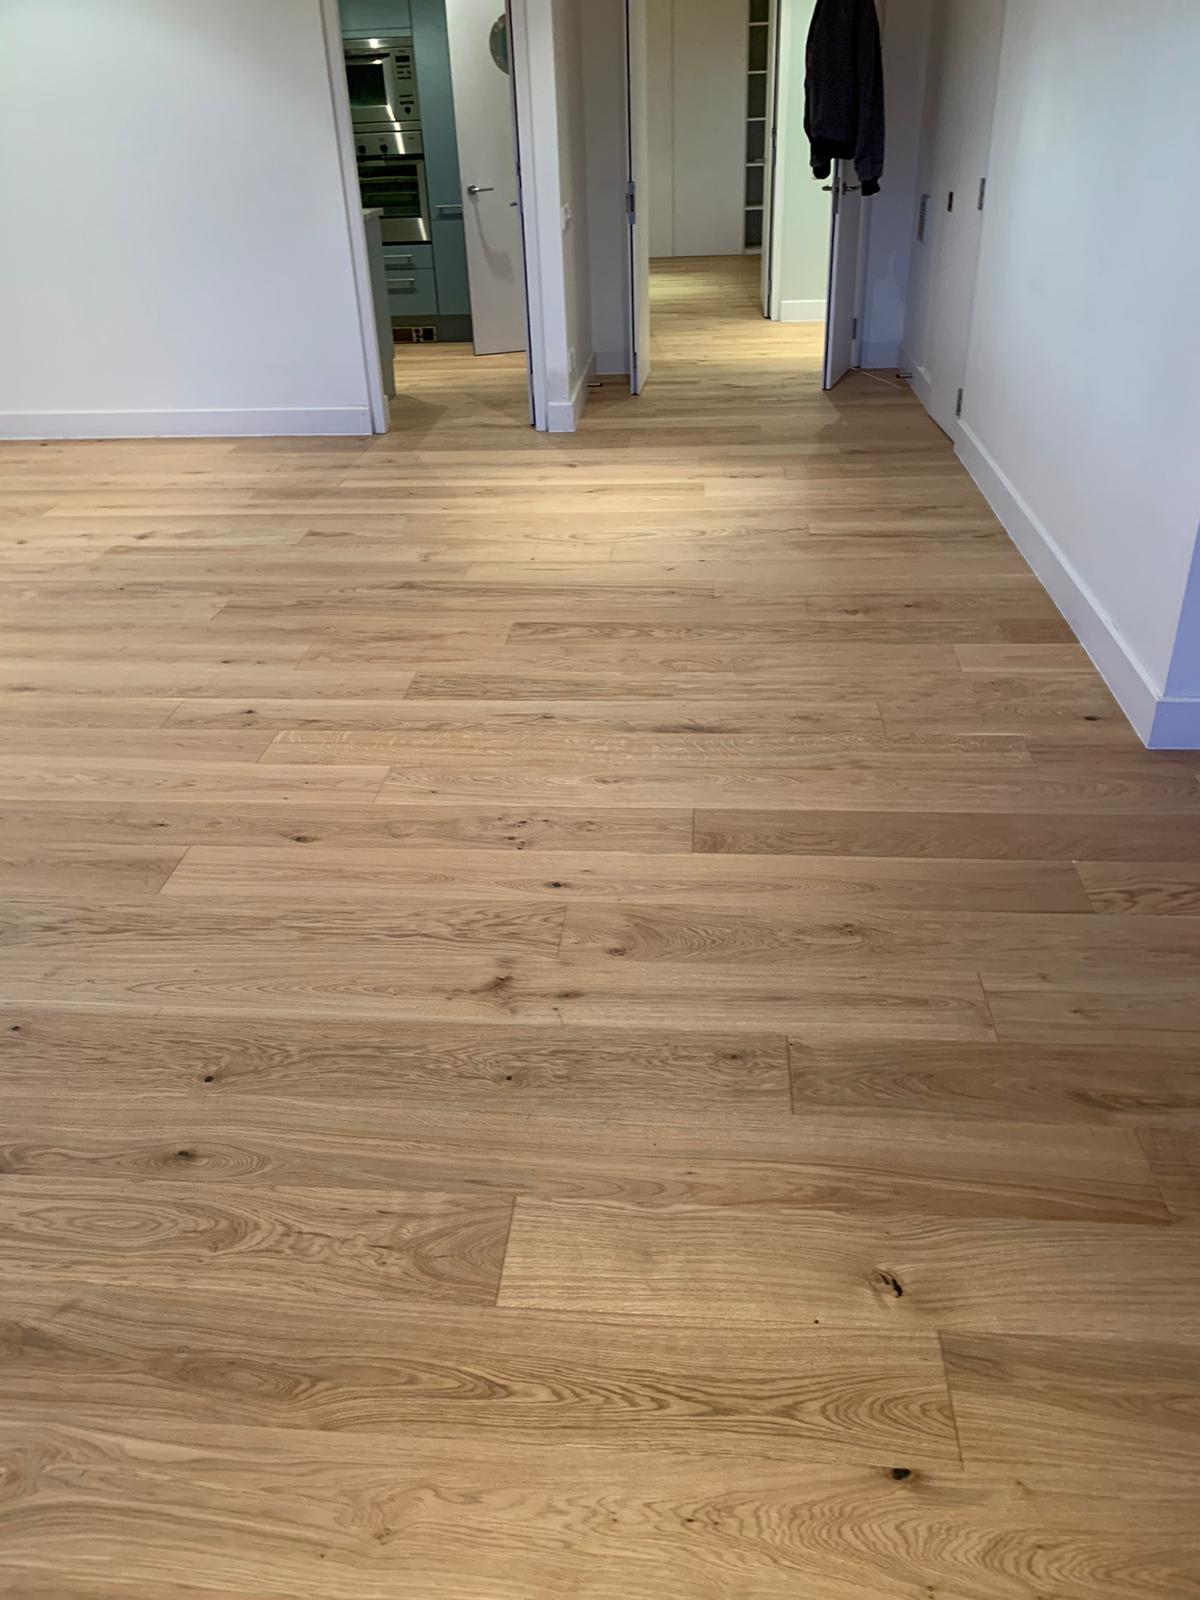 Kersaint Cobb hardwood flooring in Barnes 3